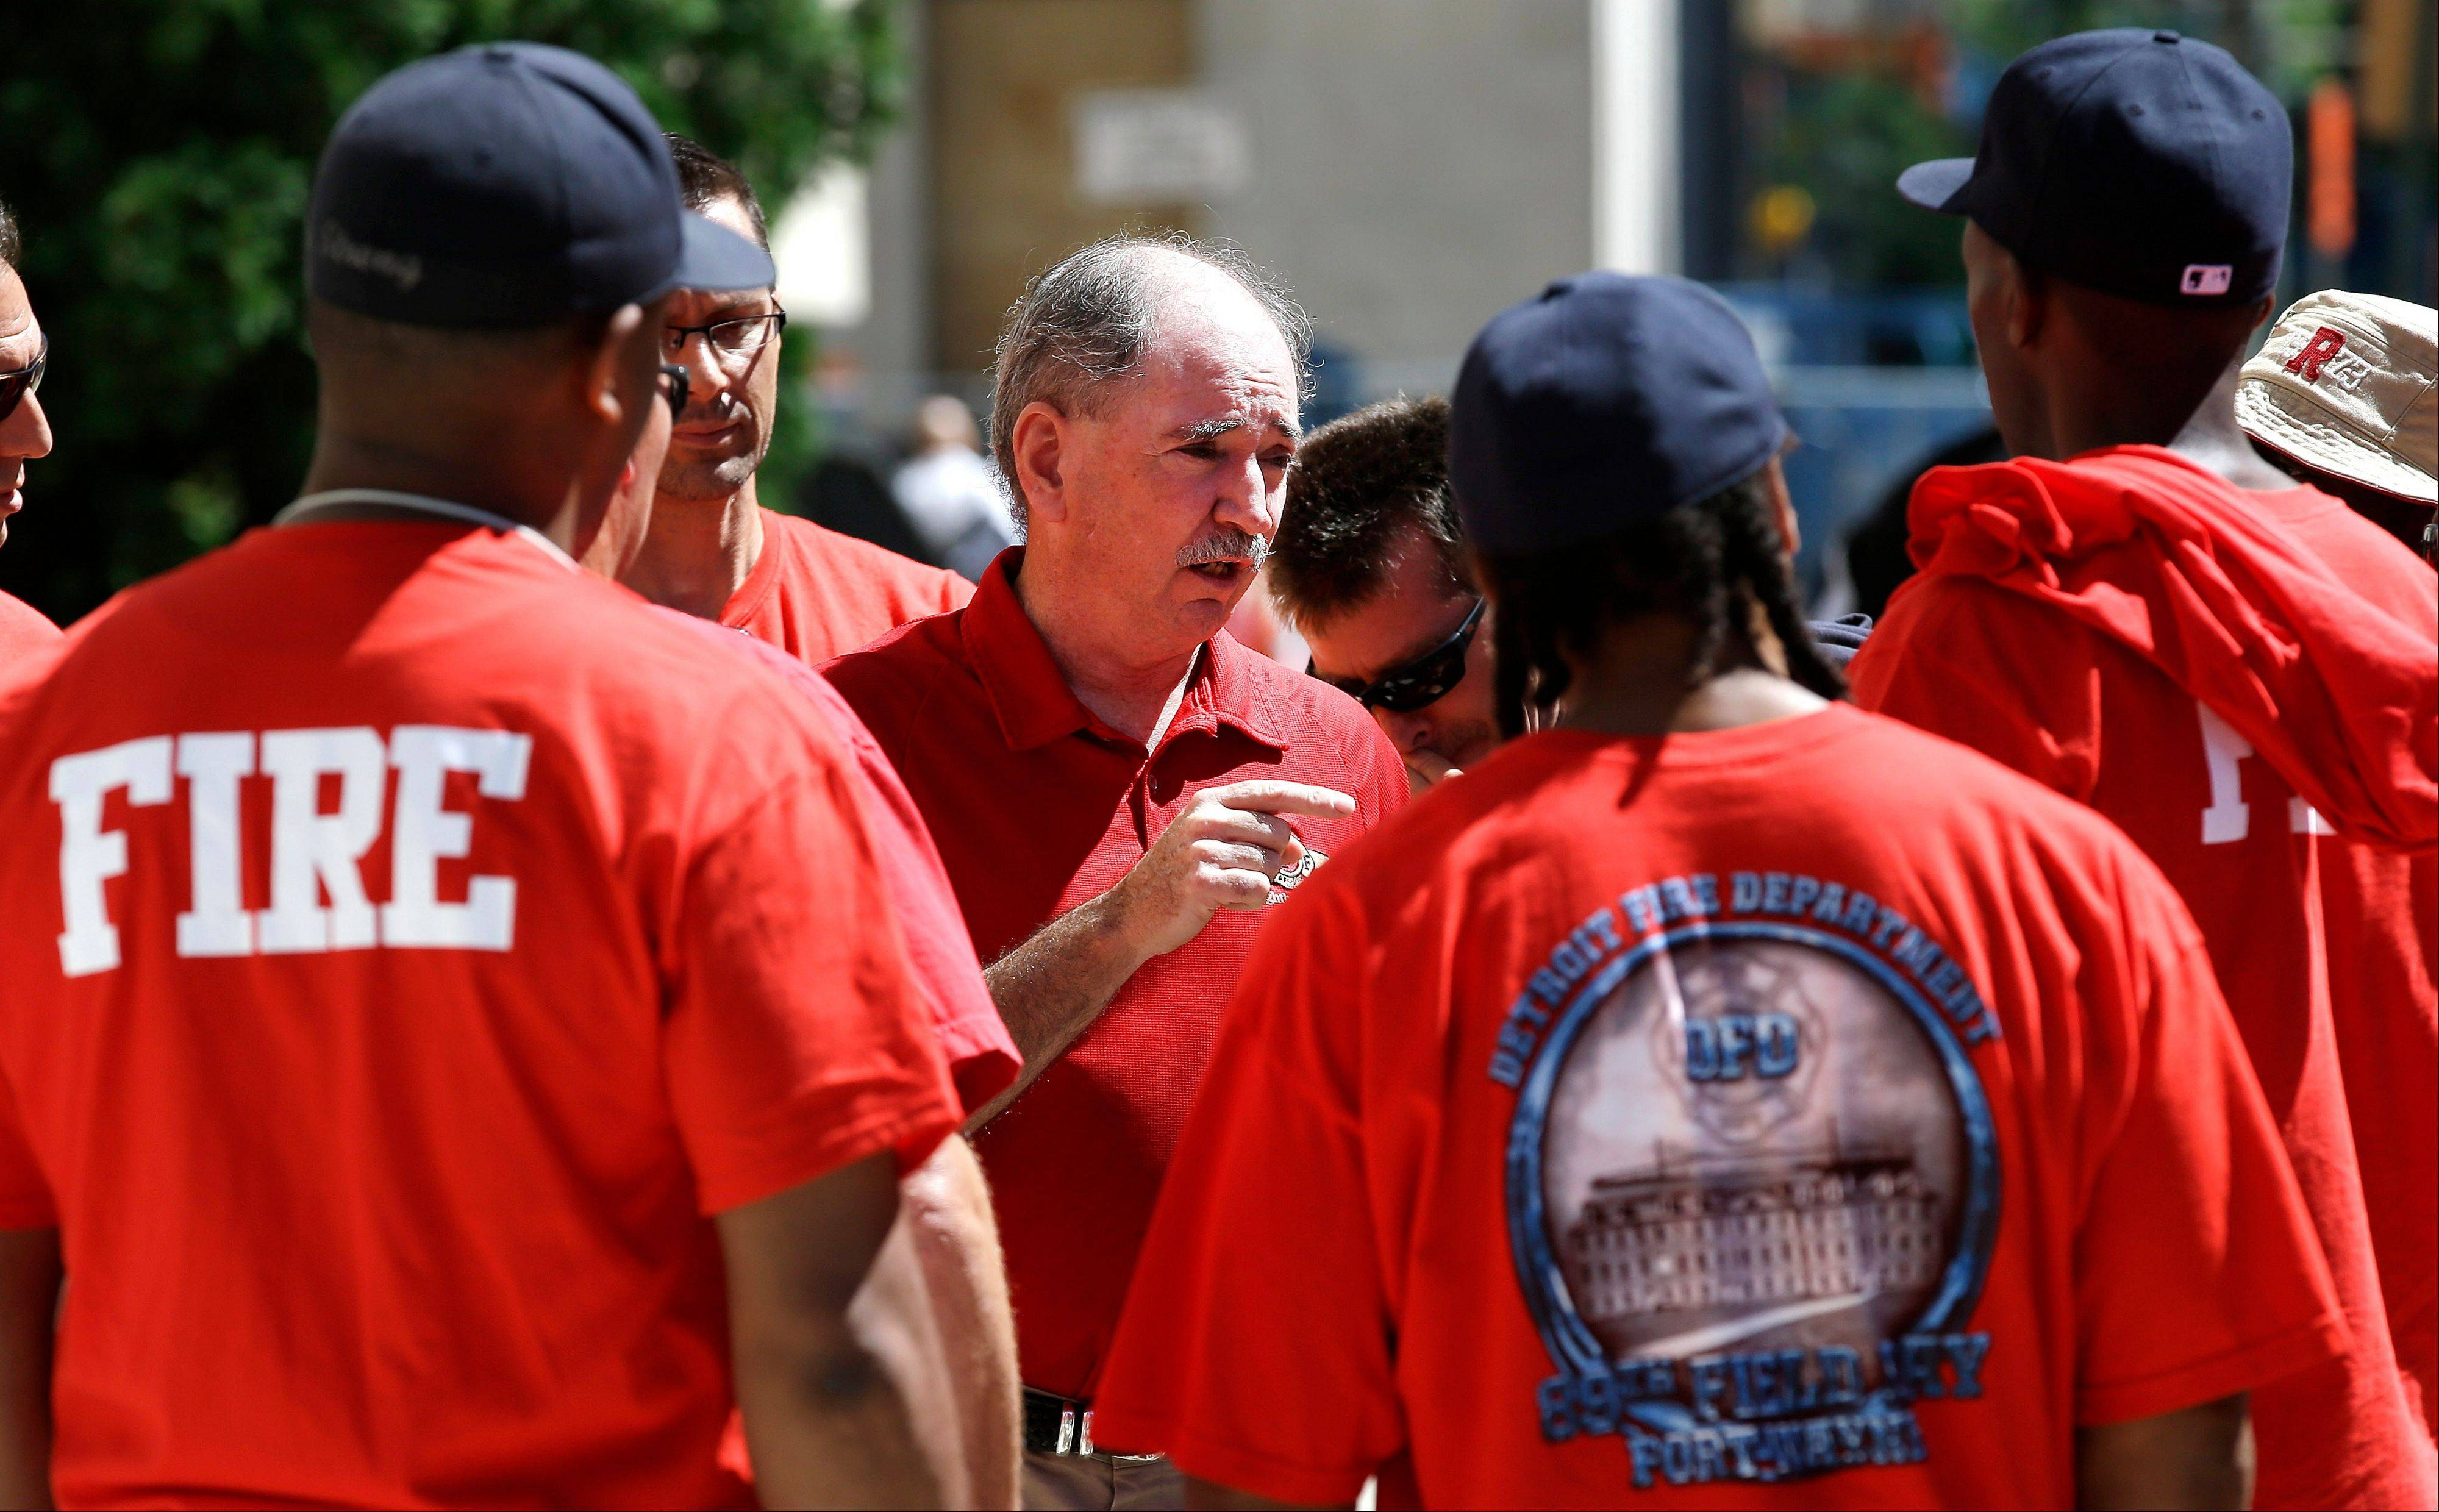 On July 24 Dan McNamara, president of the Detroit Fire Fighters Association, speaks to firefighters outside the Theodore Levin United States Courthouse in Detroit. Detroit's historic bankruptcy filing is a major setback for public sector unions that have spent years trying to ward off cuts to the pensions and benefits of government workers. If the city succeeds, it could put into jeopardy a key bargaining tool for unions that have often deferred higher wages in favor of more generous pension benefits. And it could embolden other financially troubled cities dealing with pension shortfalls to consider bankruptcy, or at least take a harder line with their unions in negotiating cuts.